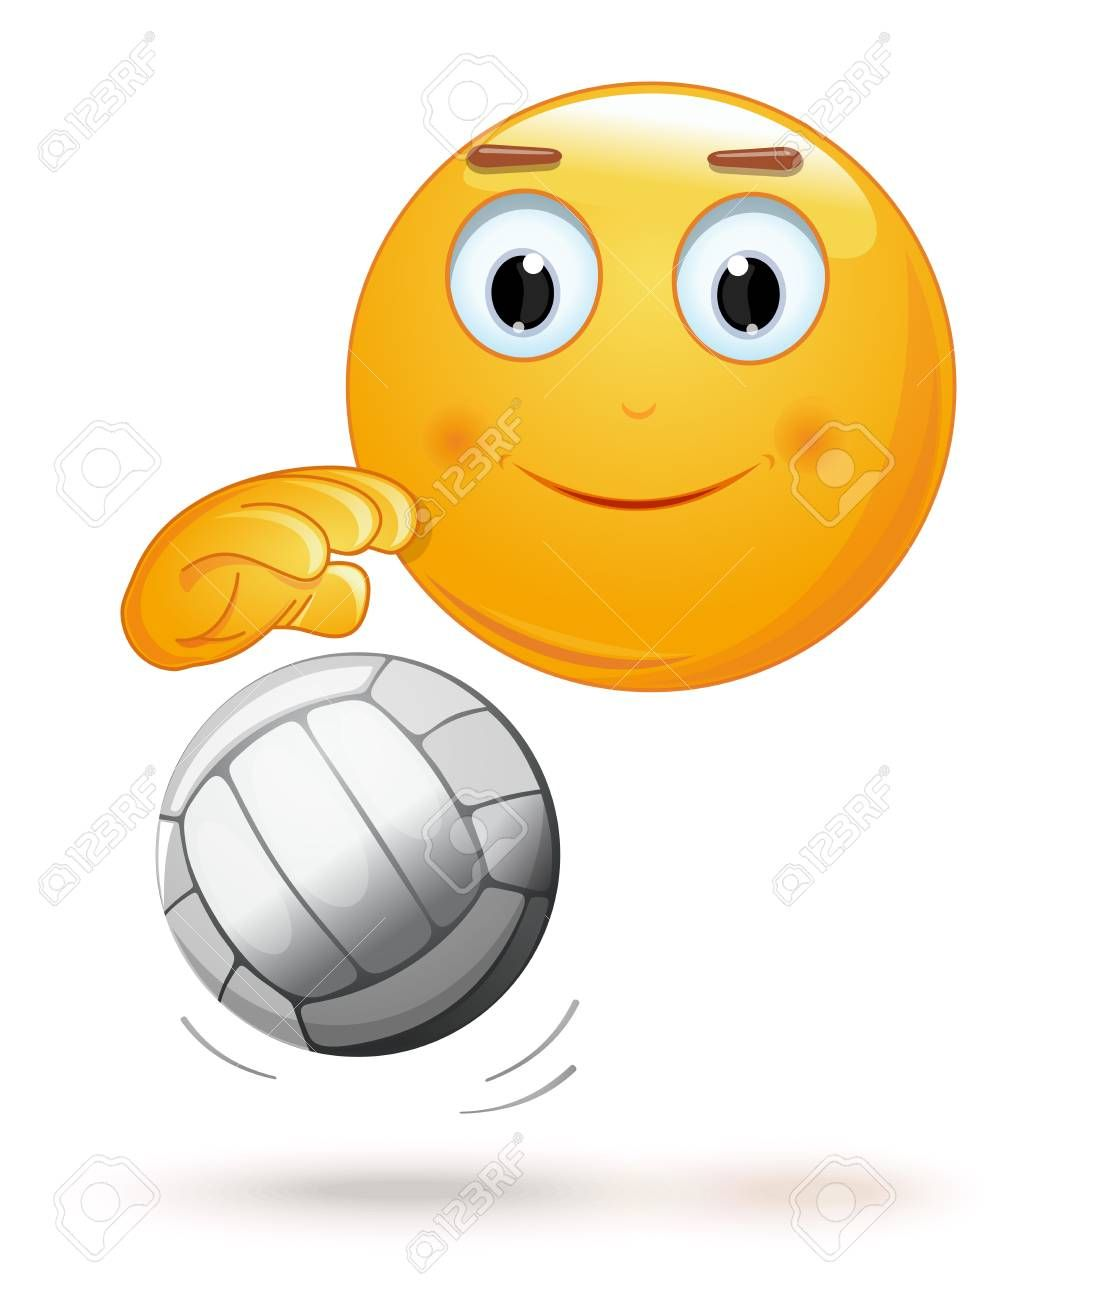 Emoticon Face Playing Volleyball Cheerful Smiley With A Ball Emoji And Ball For Playing Volleyball Vector Illustration Sponsored Emoticon Smiley Emoji